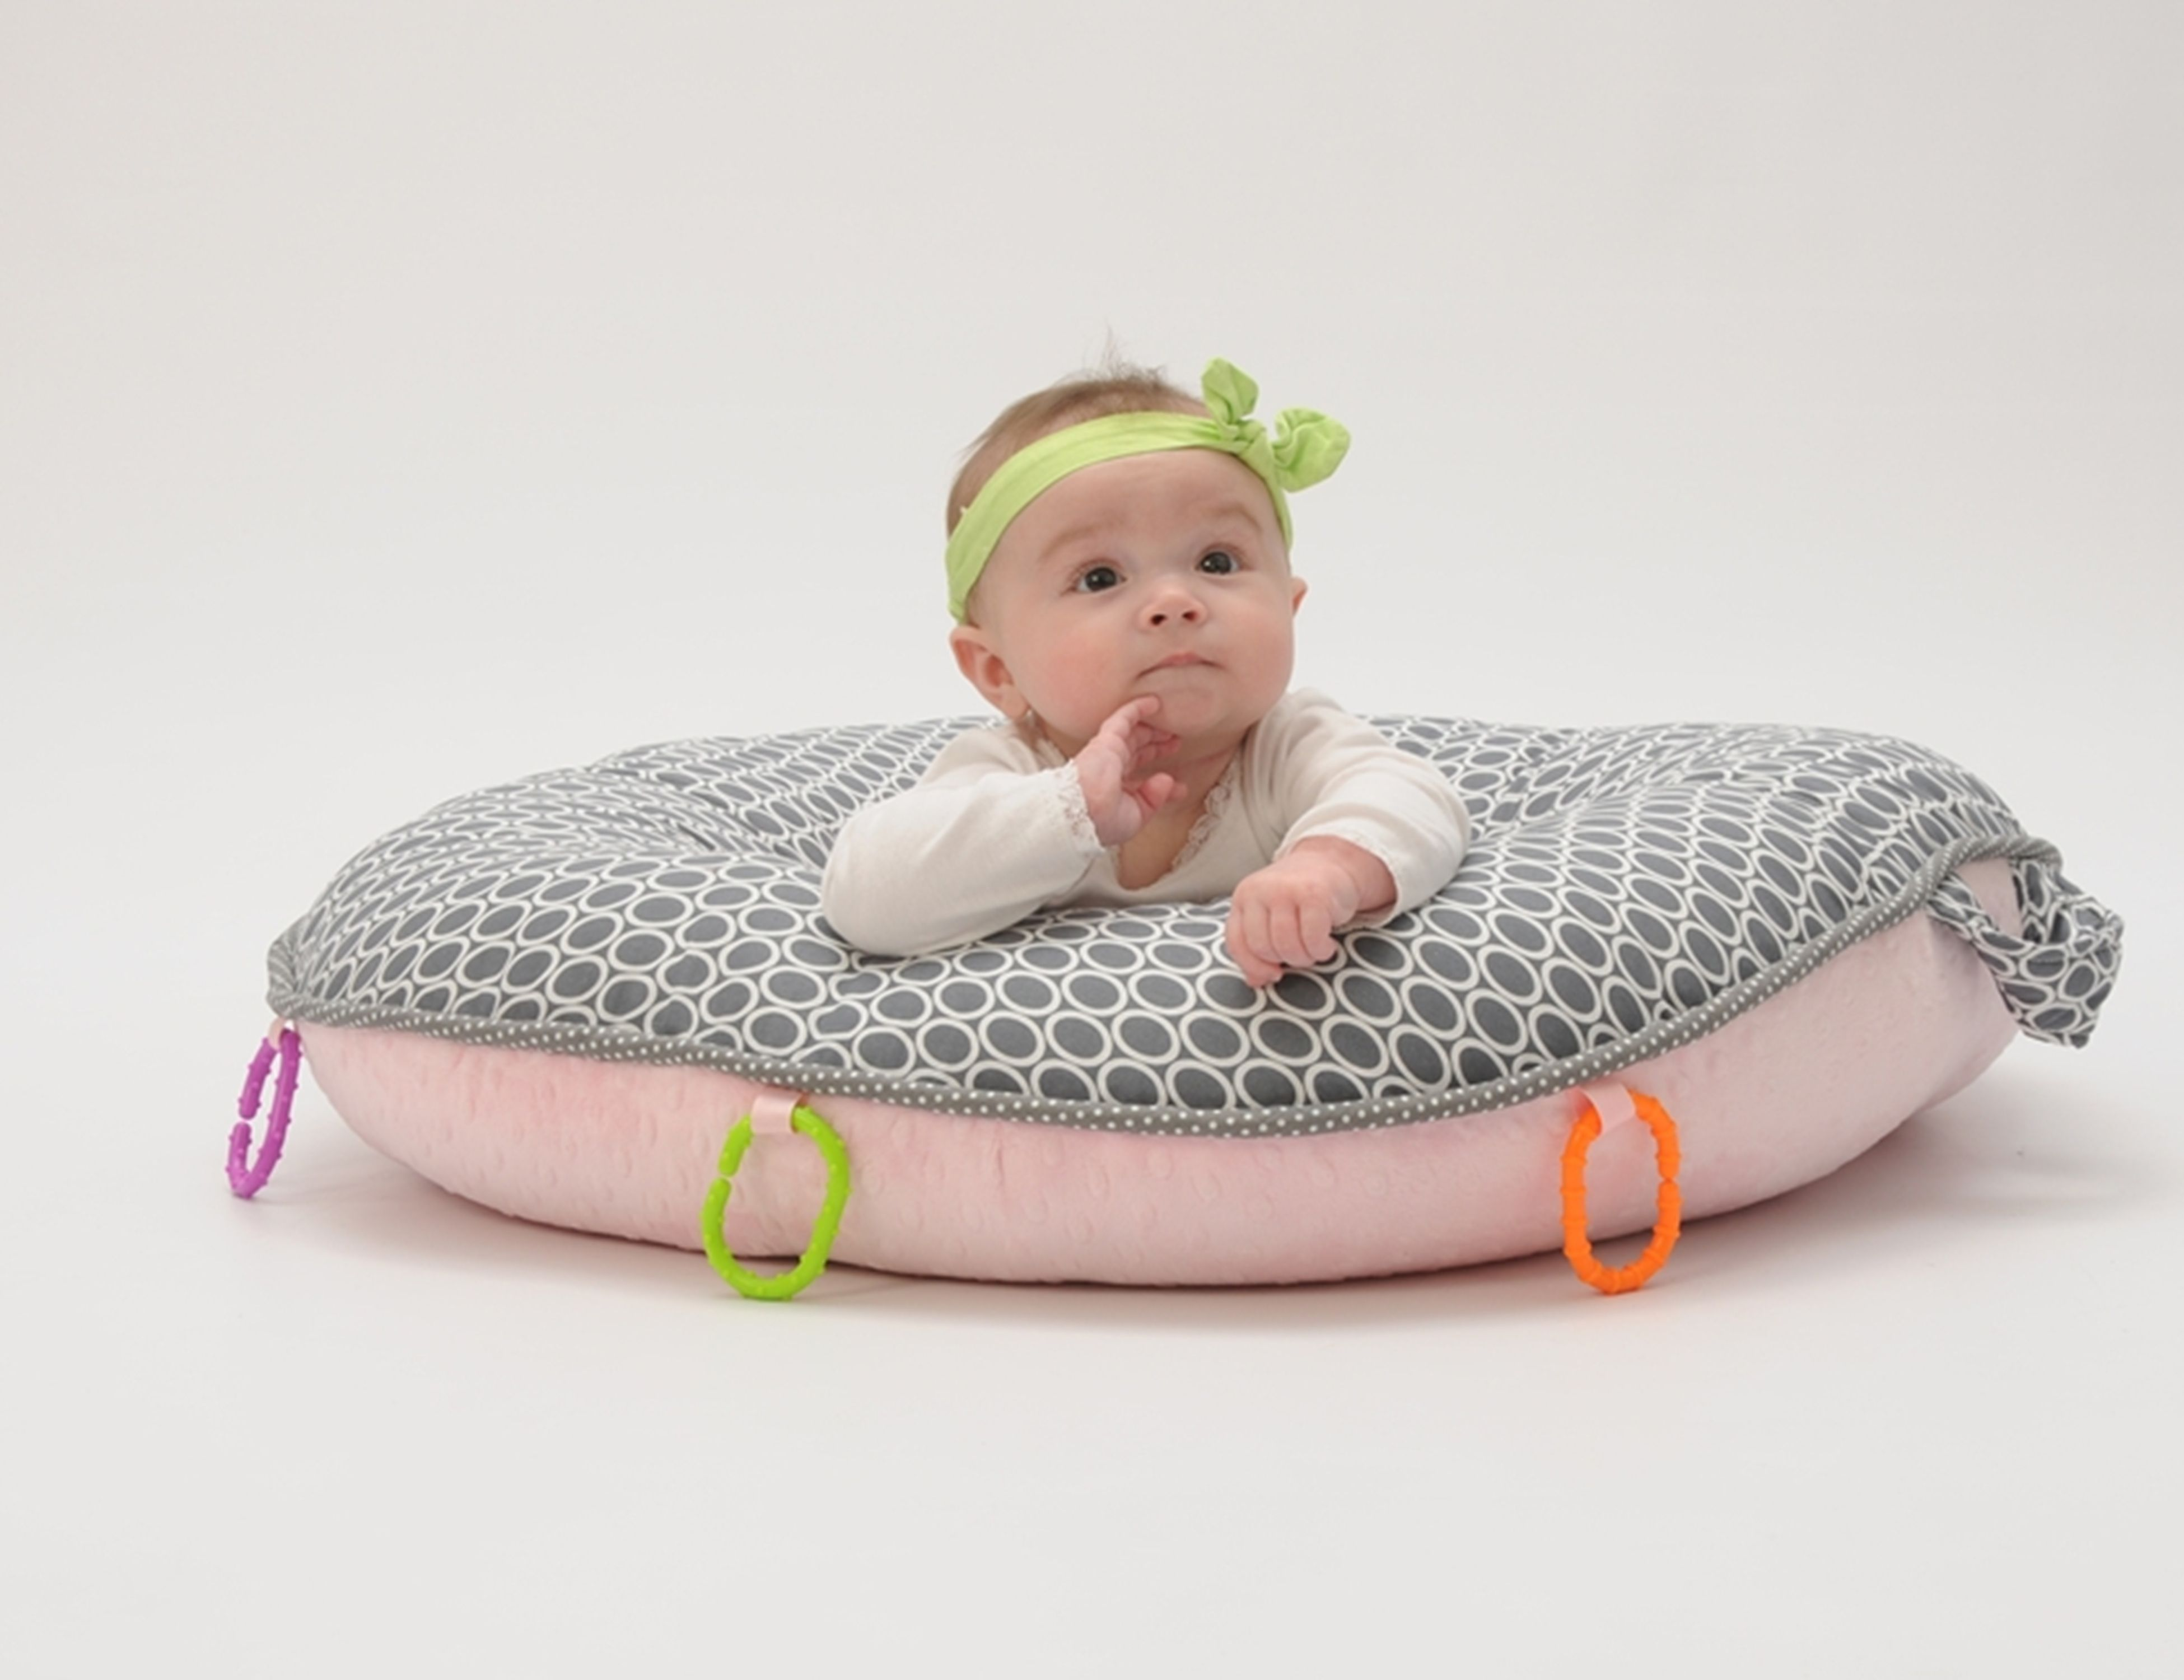 Floor Nanny Pillow For Baby : pello baby on majestic pello pello fun Pinterest Babies and Child